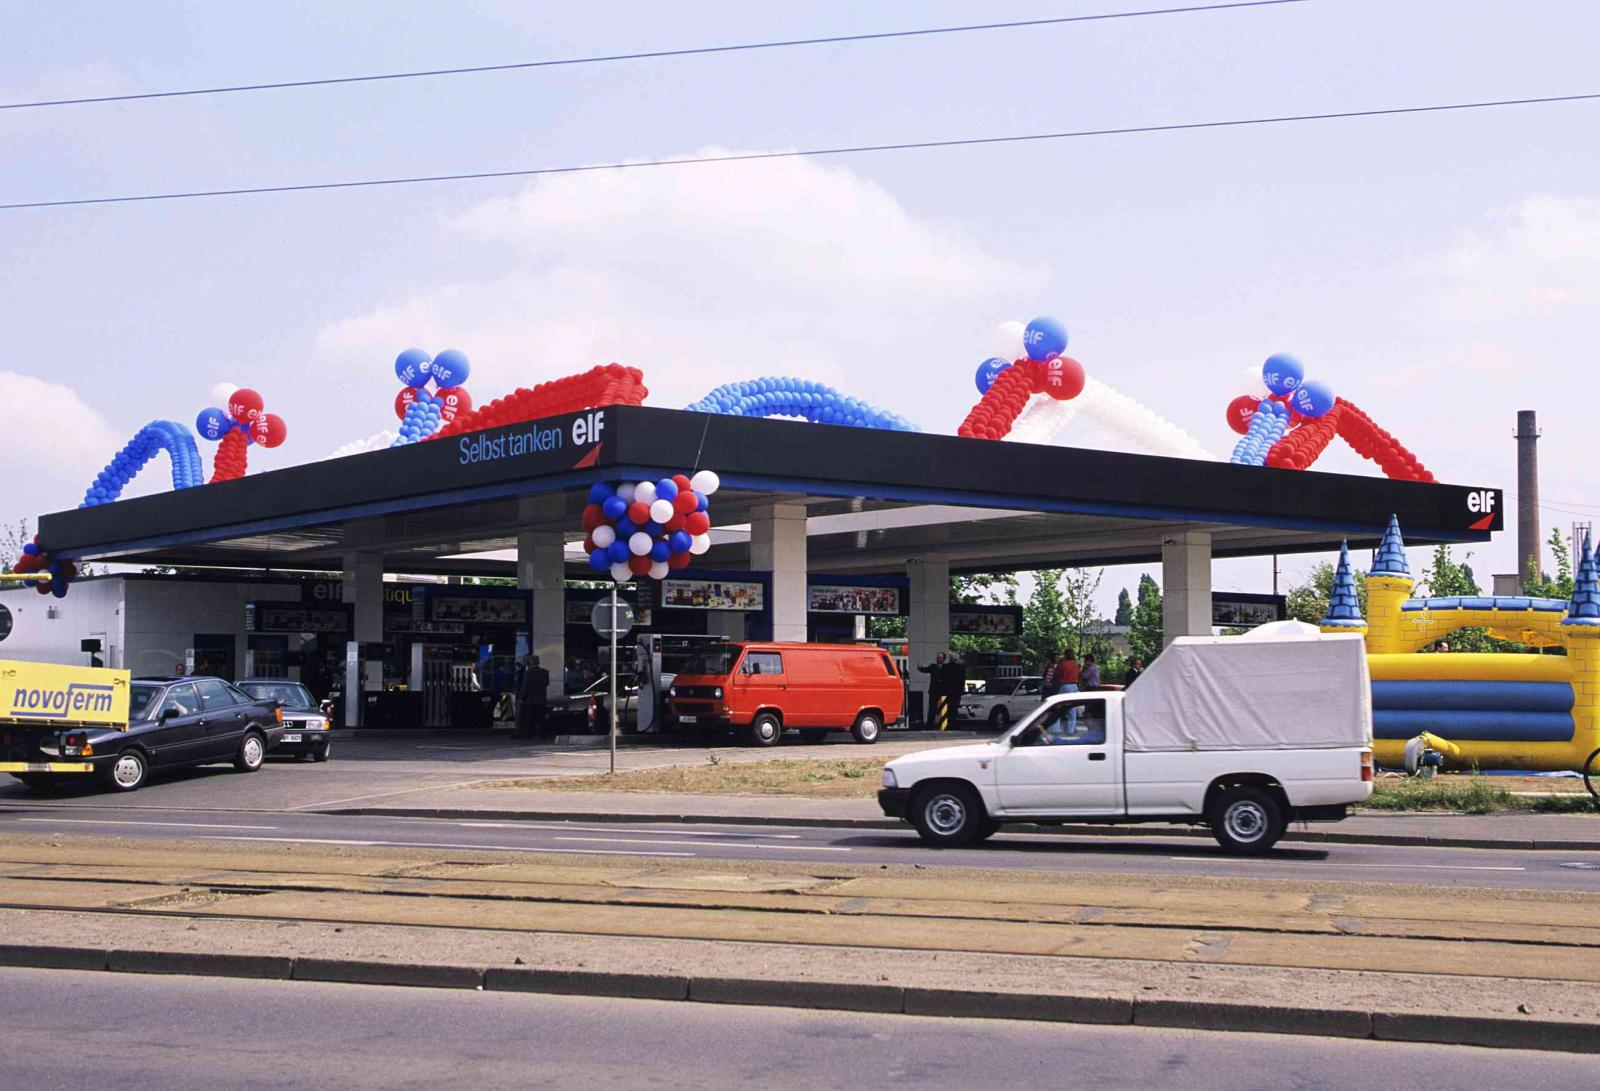 Inauguration of the Elf-Minol gas station in Leipzig